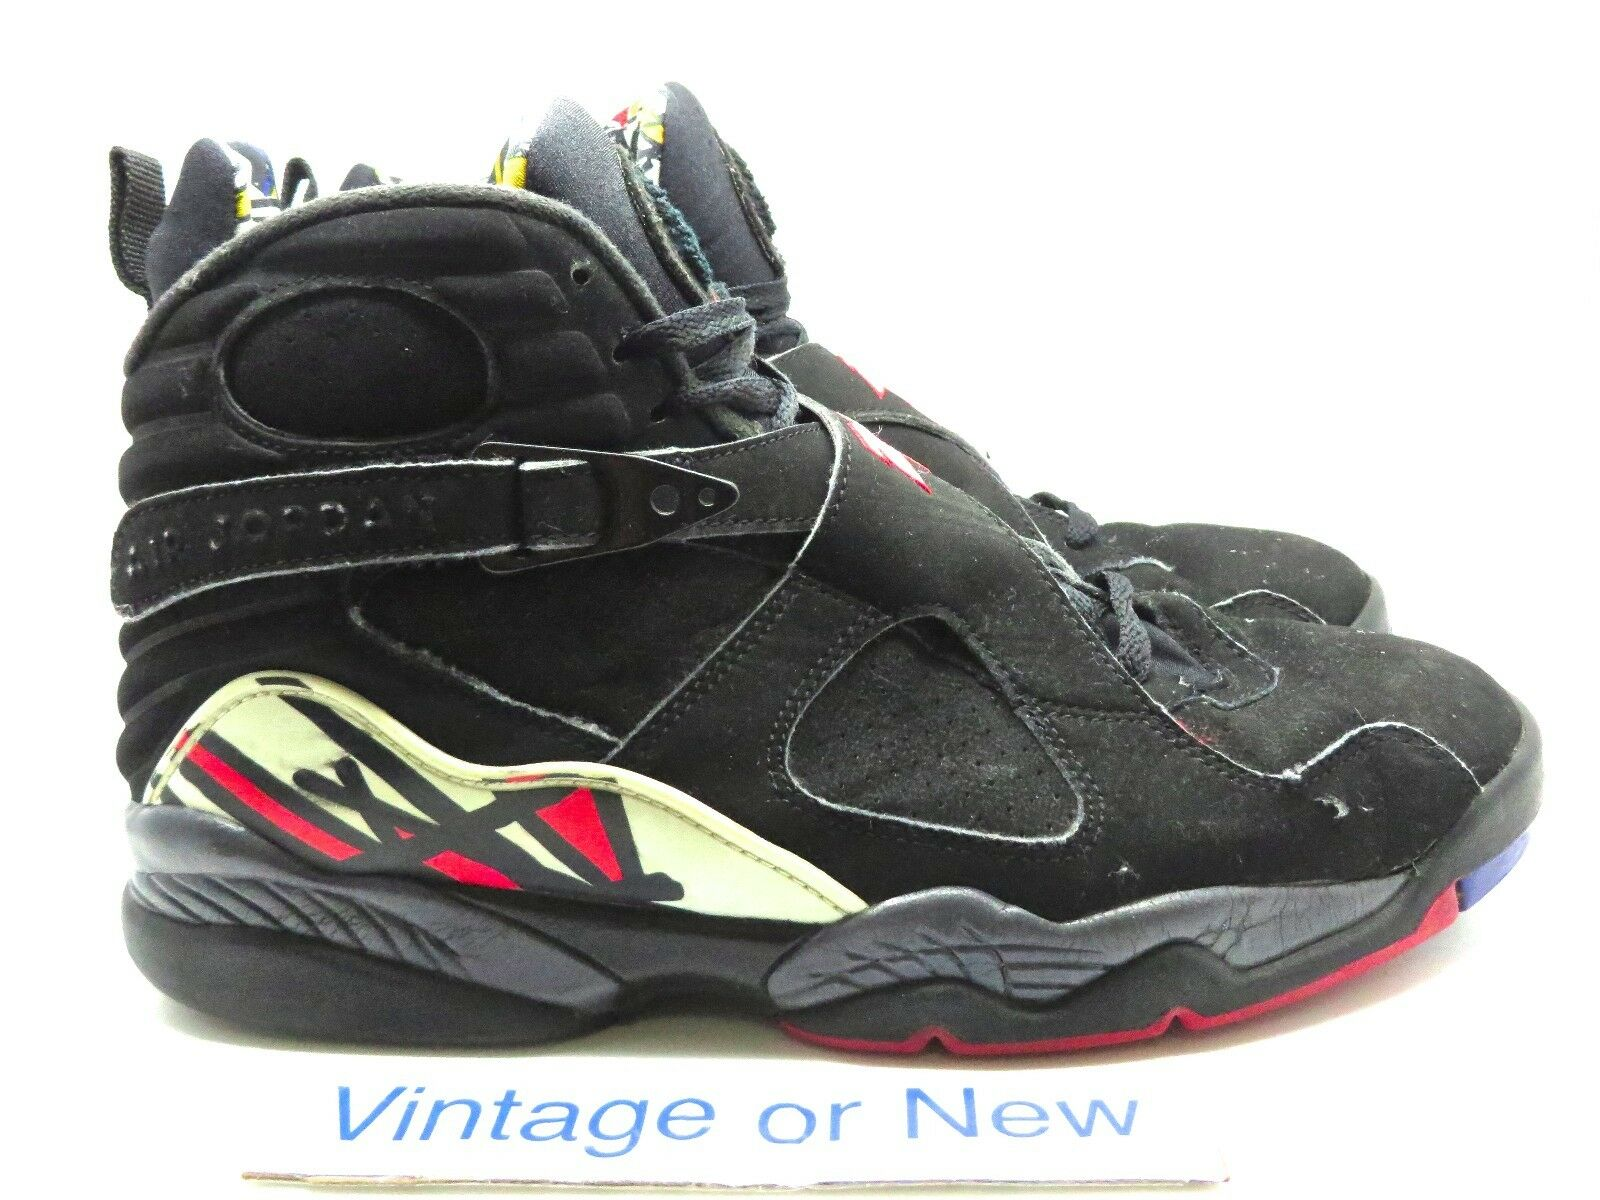 Air Jordan VIII 8 Playoff Retro 2007 Price reduction Great discount